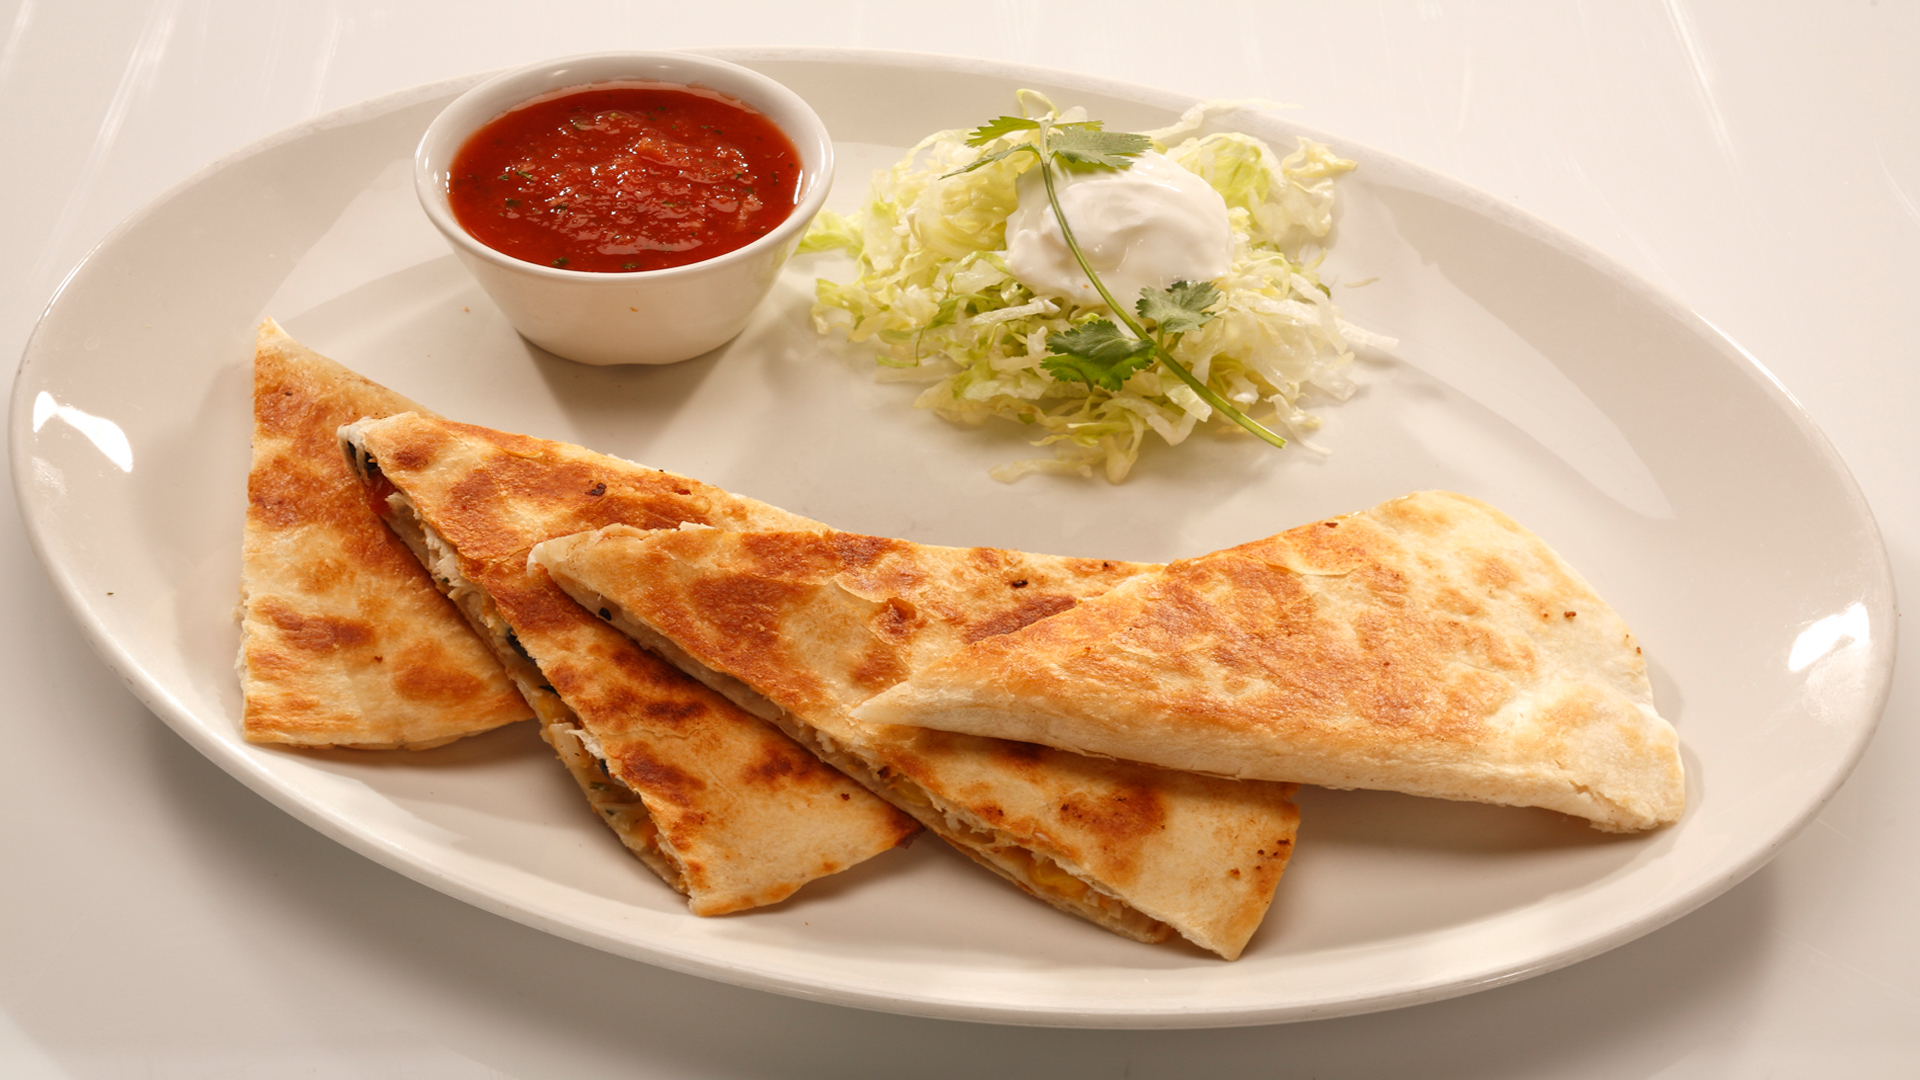 Chicken-Quesadilla-with-black-bean-salsa-1920x1080-wallpaper-wp3803755